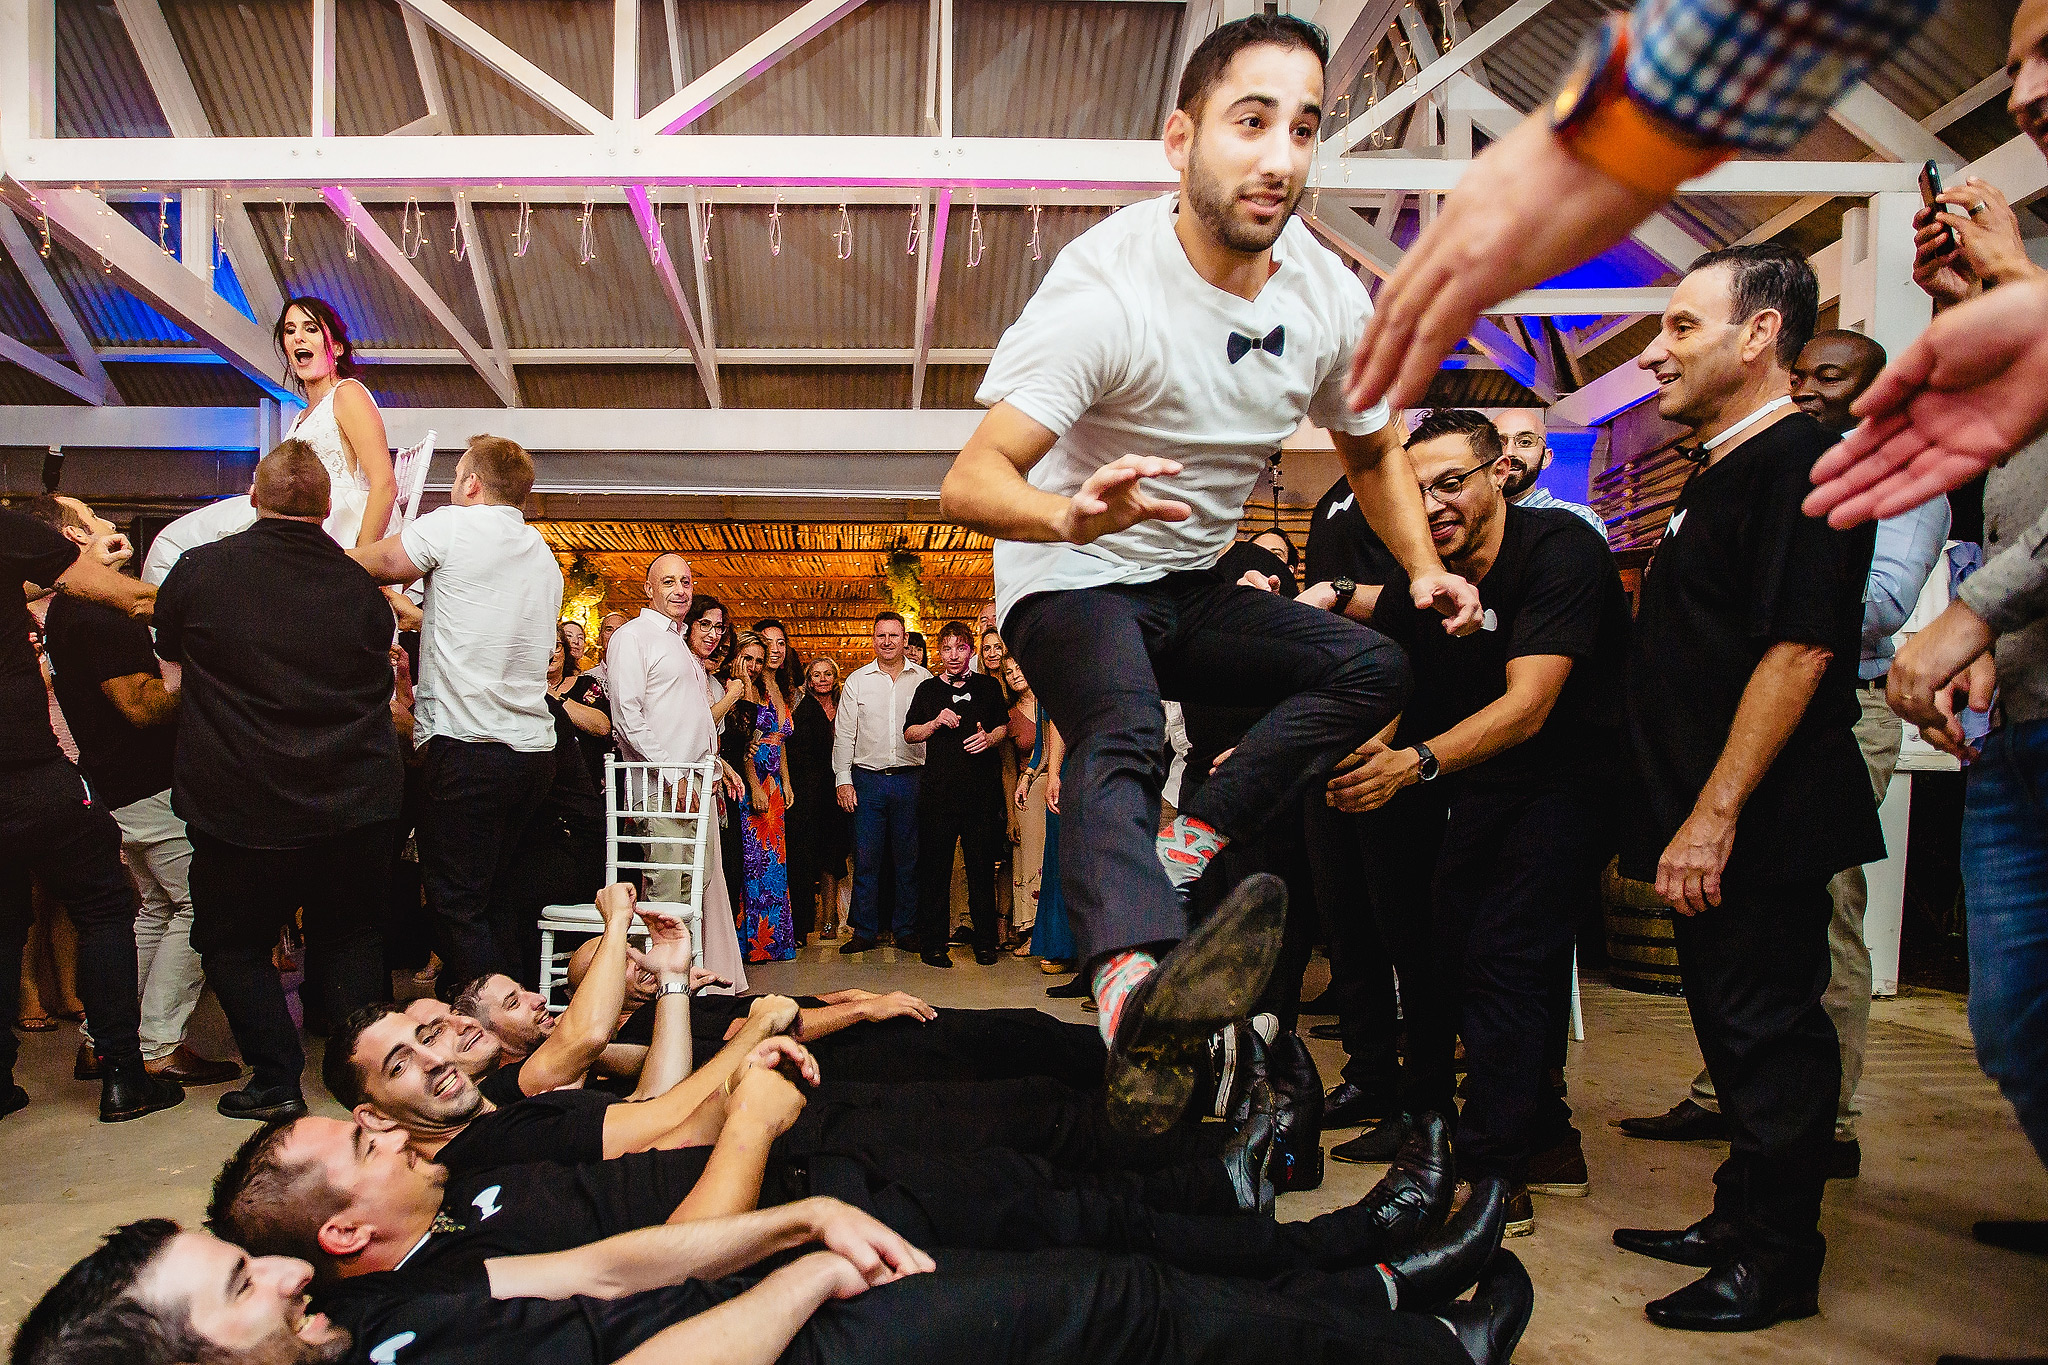 Groom leaping over prone groomsmen - photo by Ruan Redelinghuys Photography